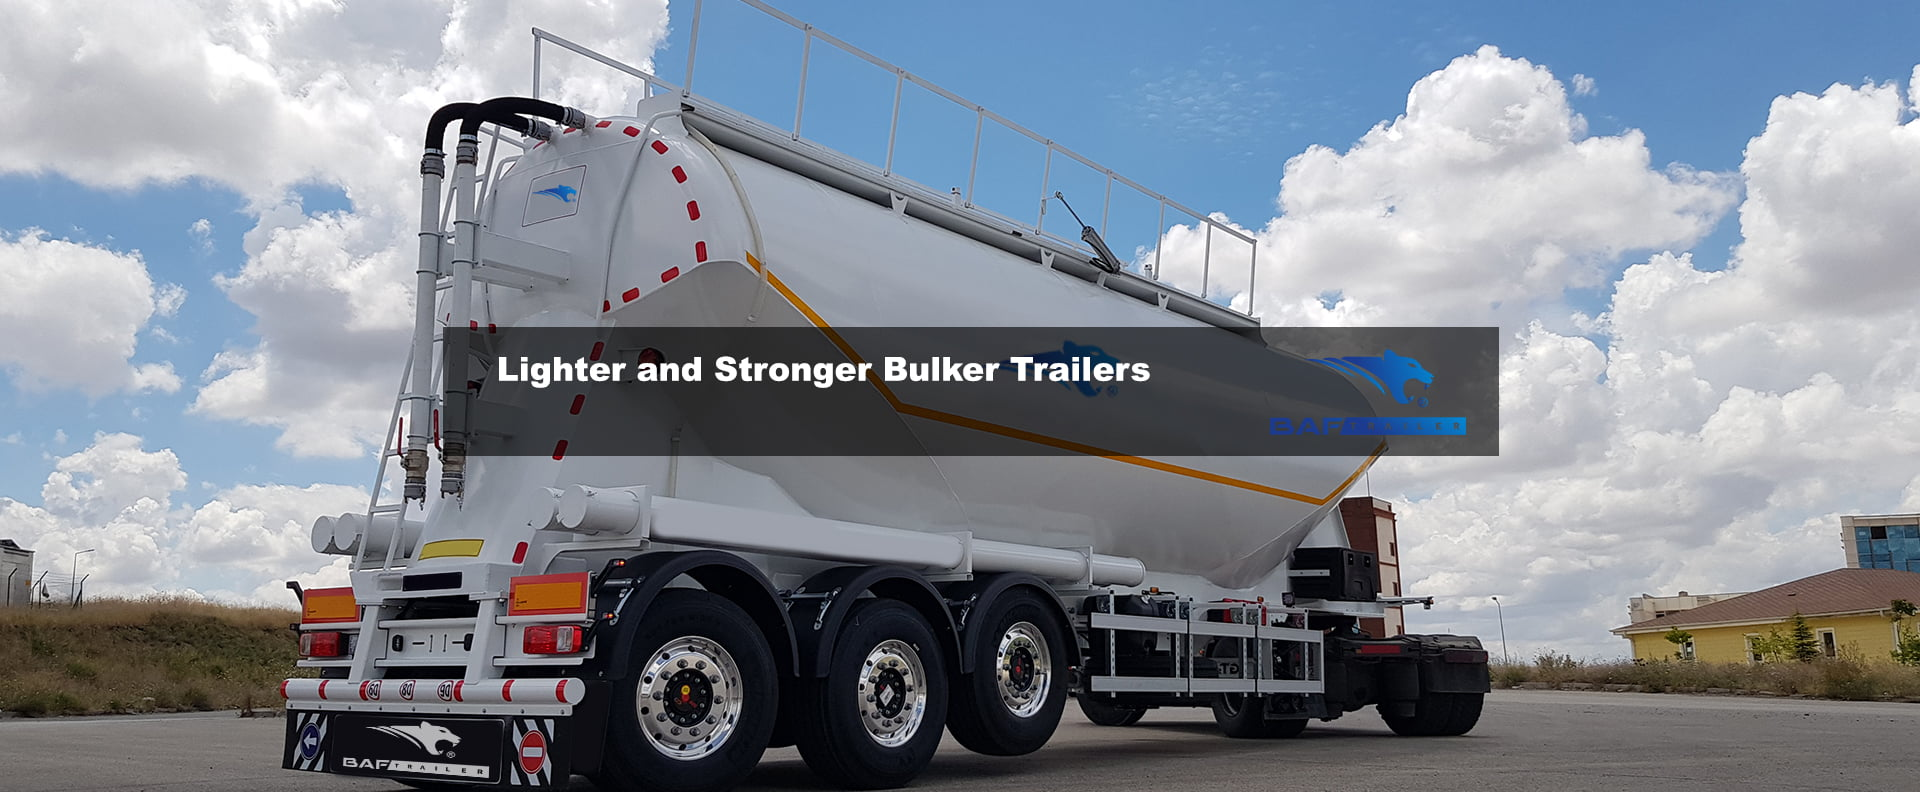 Lighter and Stronger Bulker Trailers